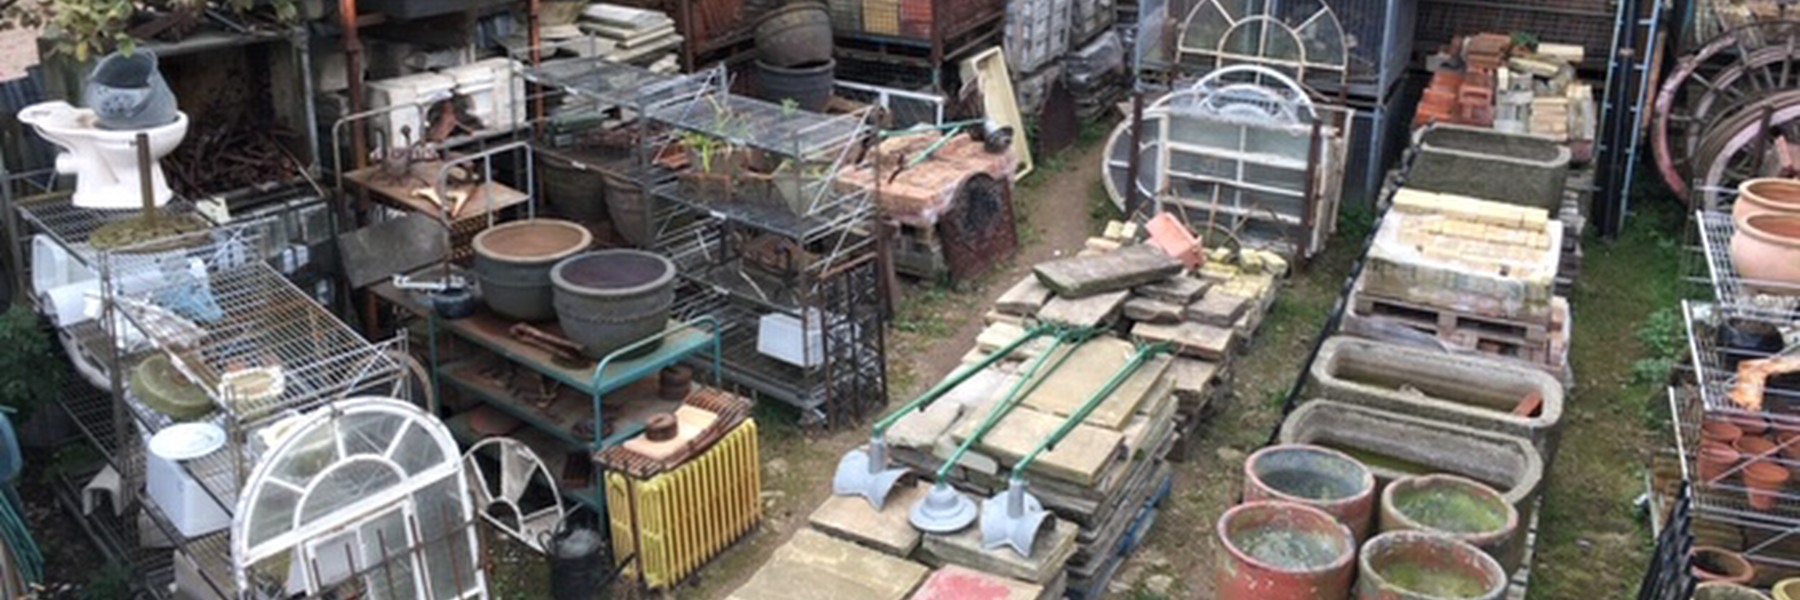 treesave reclamation yard with period building materials suffolk